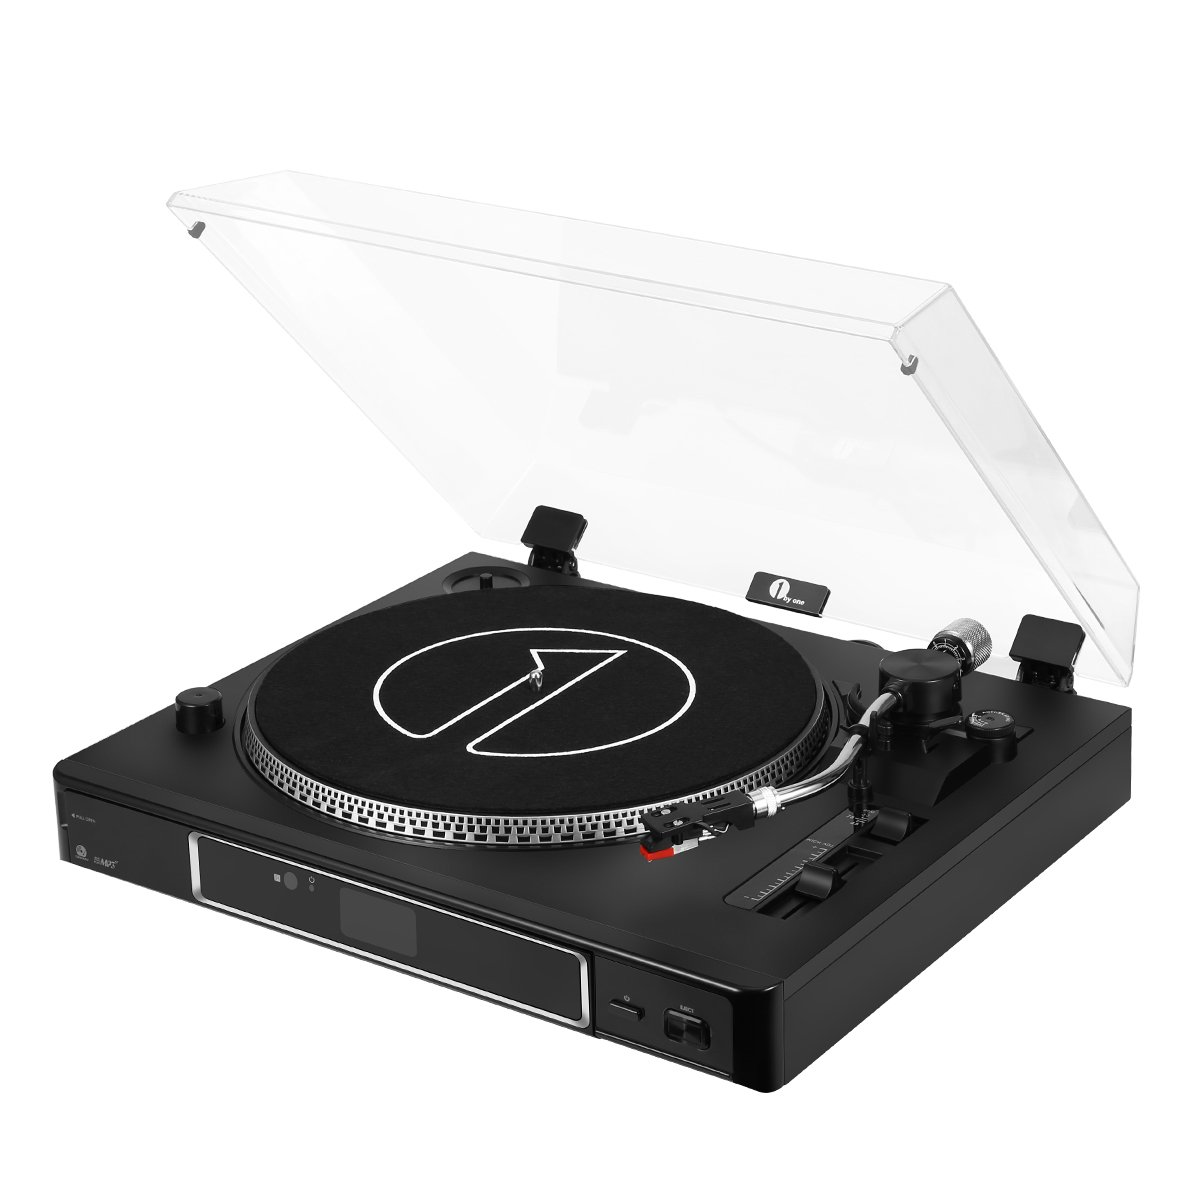 1byone 3-Speed Semi-Automatically Belt-Driven Turntable with Magnetic Phono Cartridge, Adjustable Counterweight, USB Vinyl to MP3 Record Player